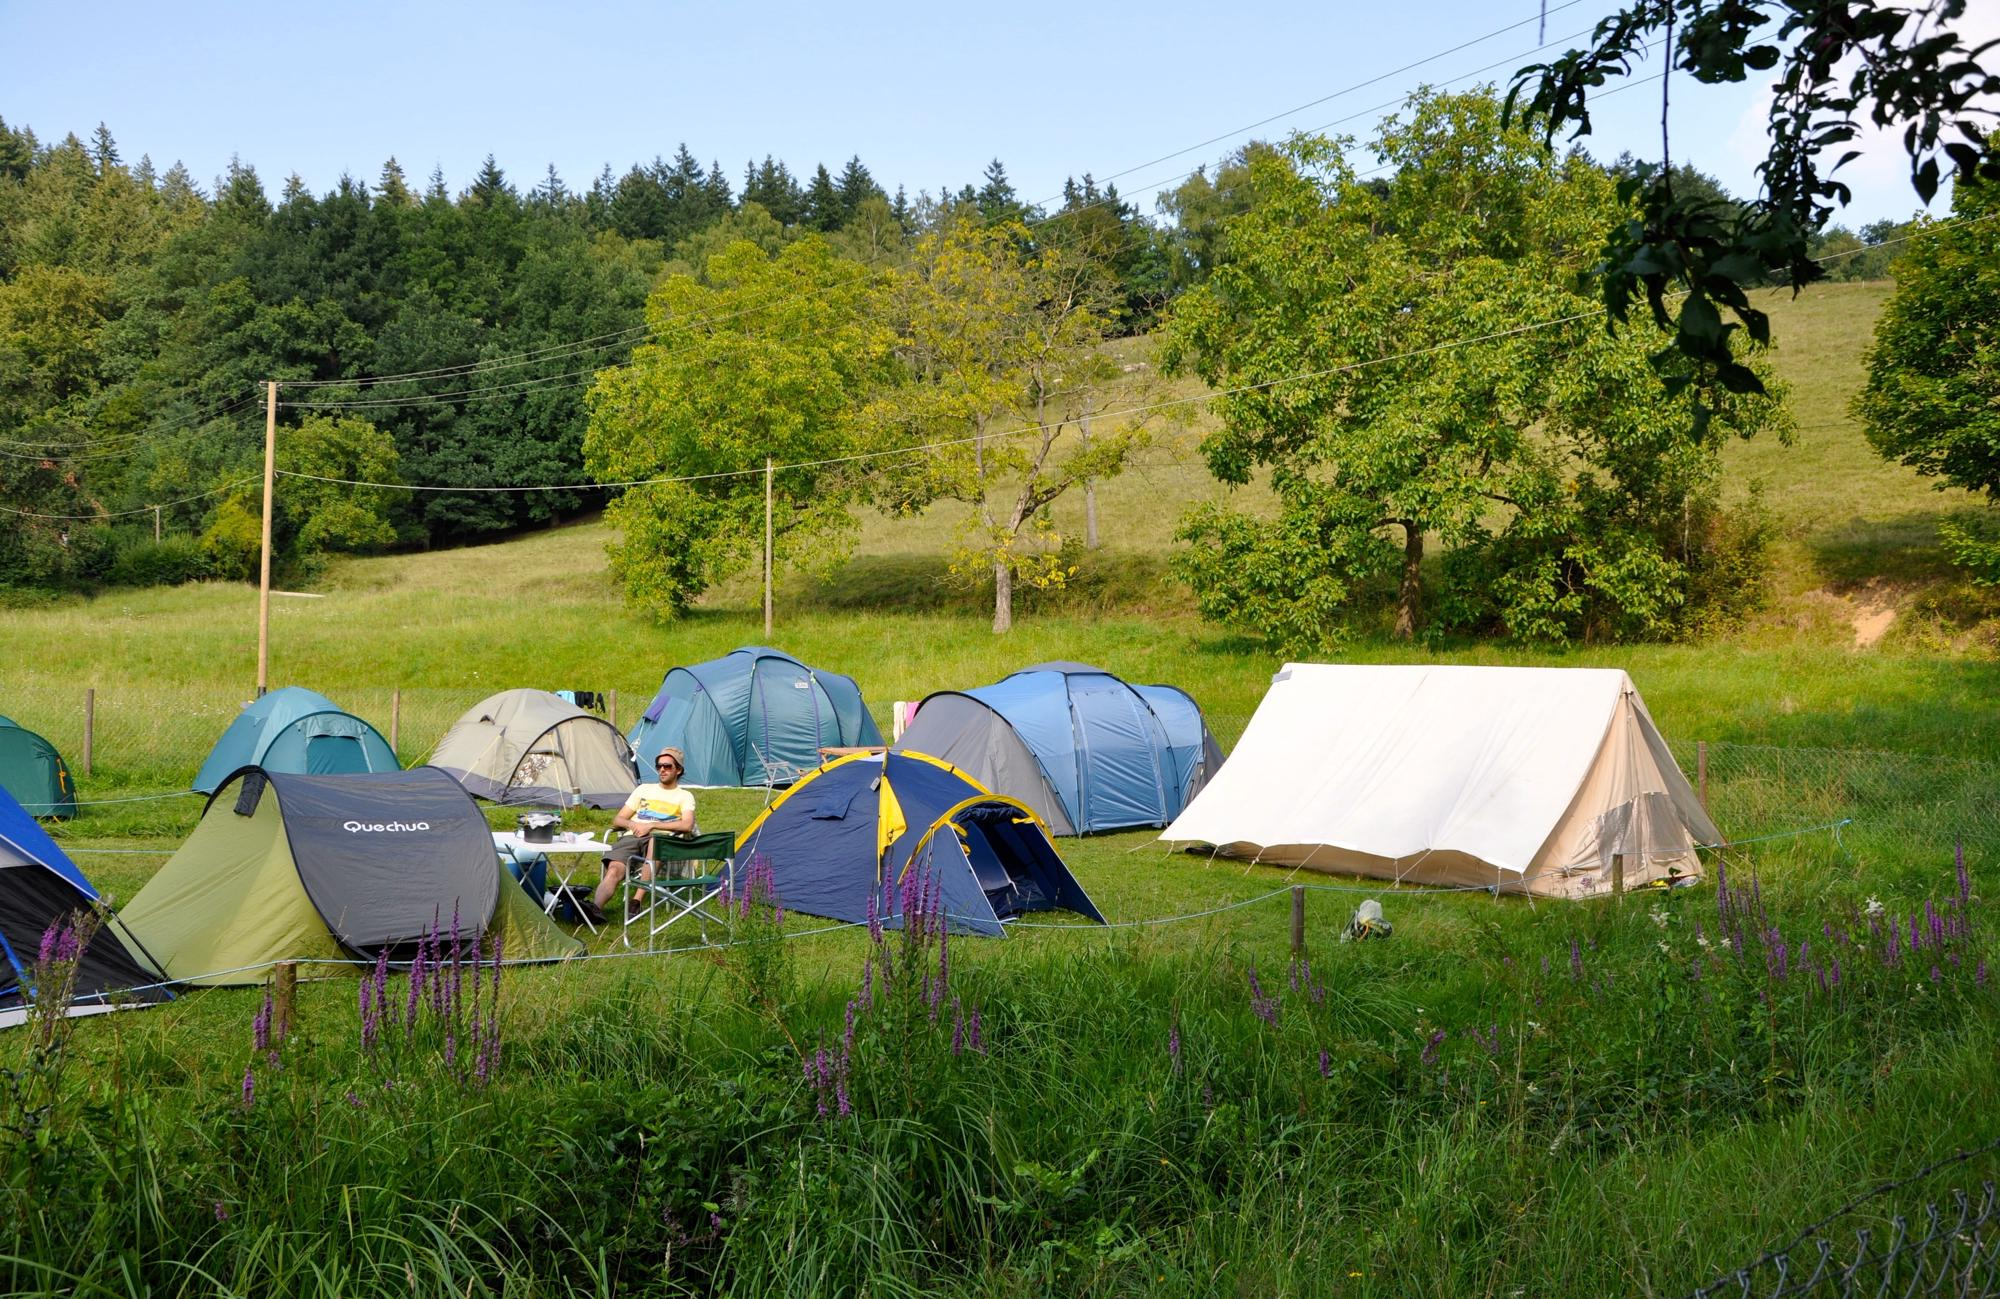 Campsites in Germany – Recommended Campsites in Germany